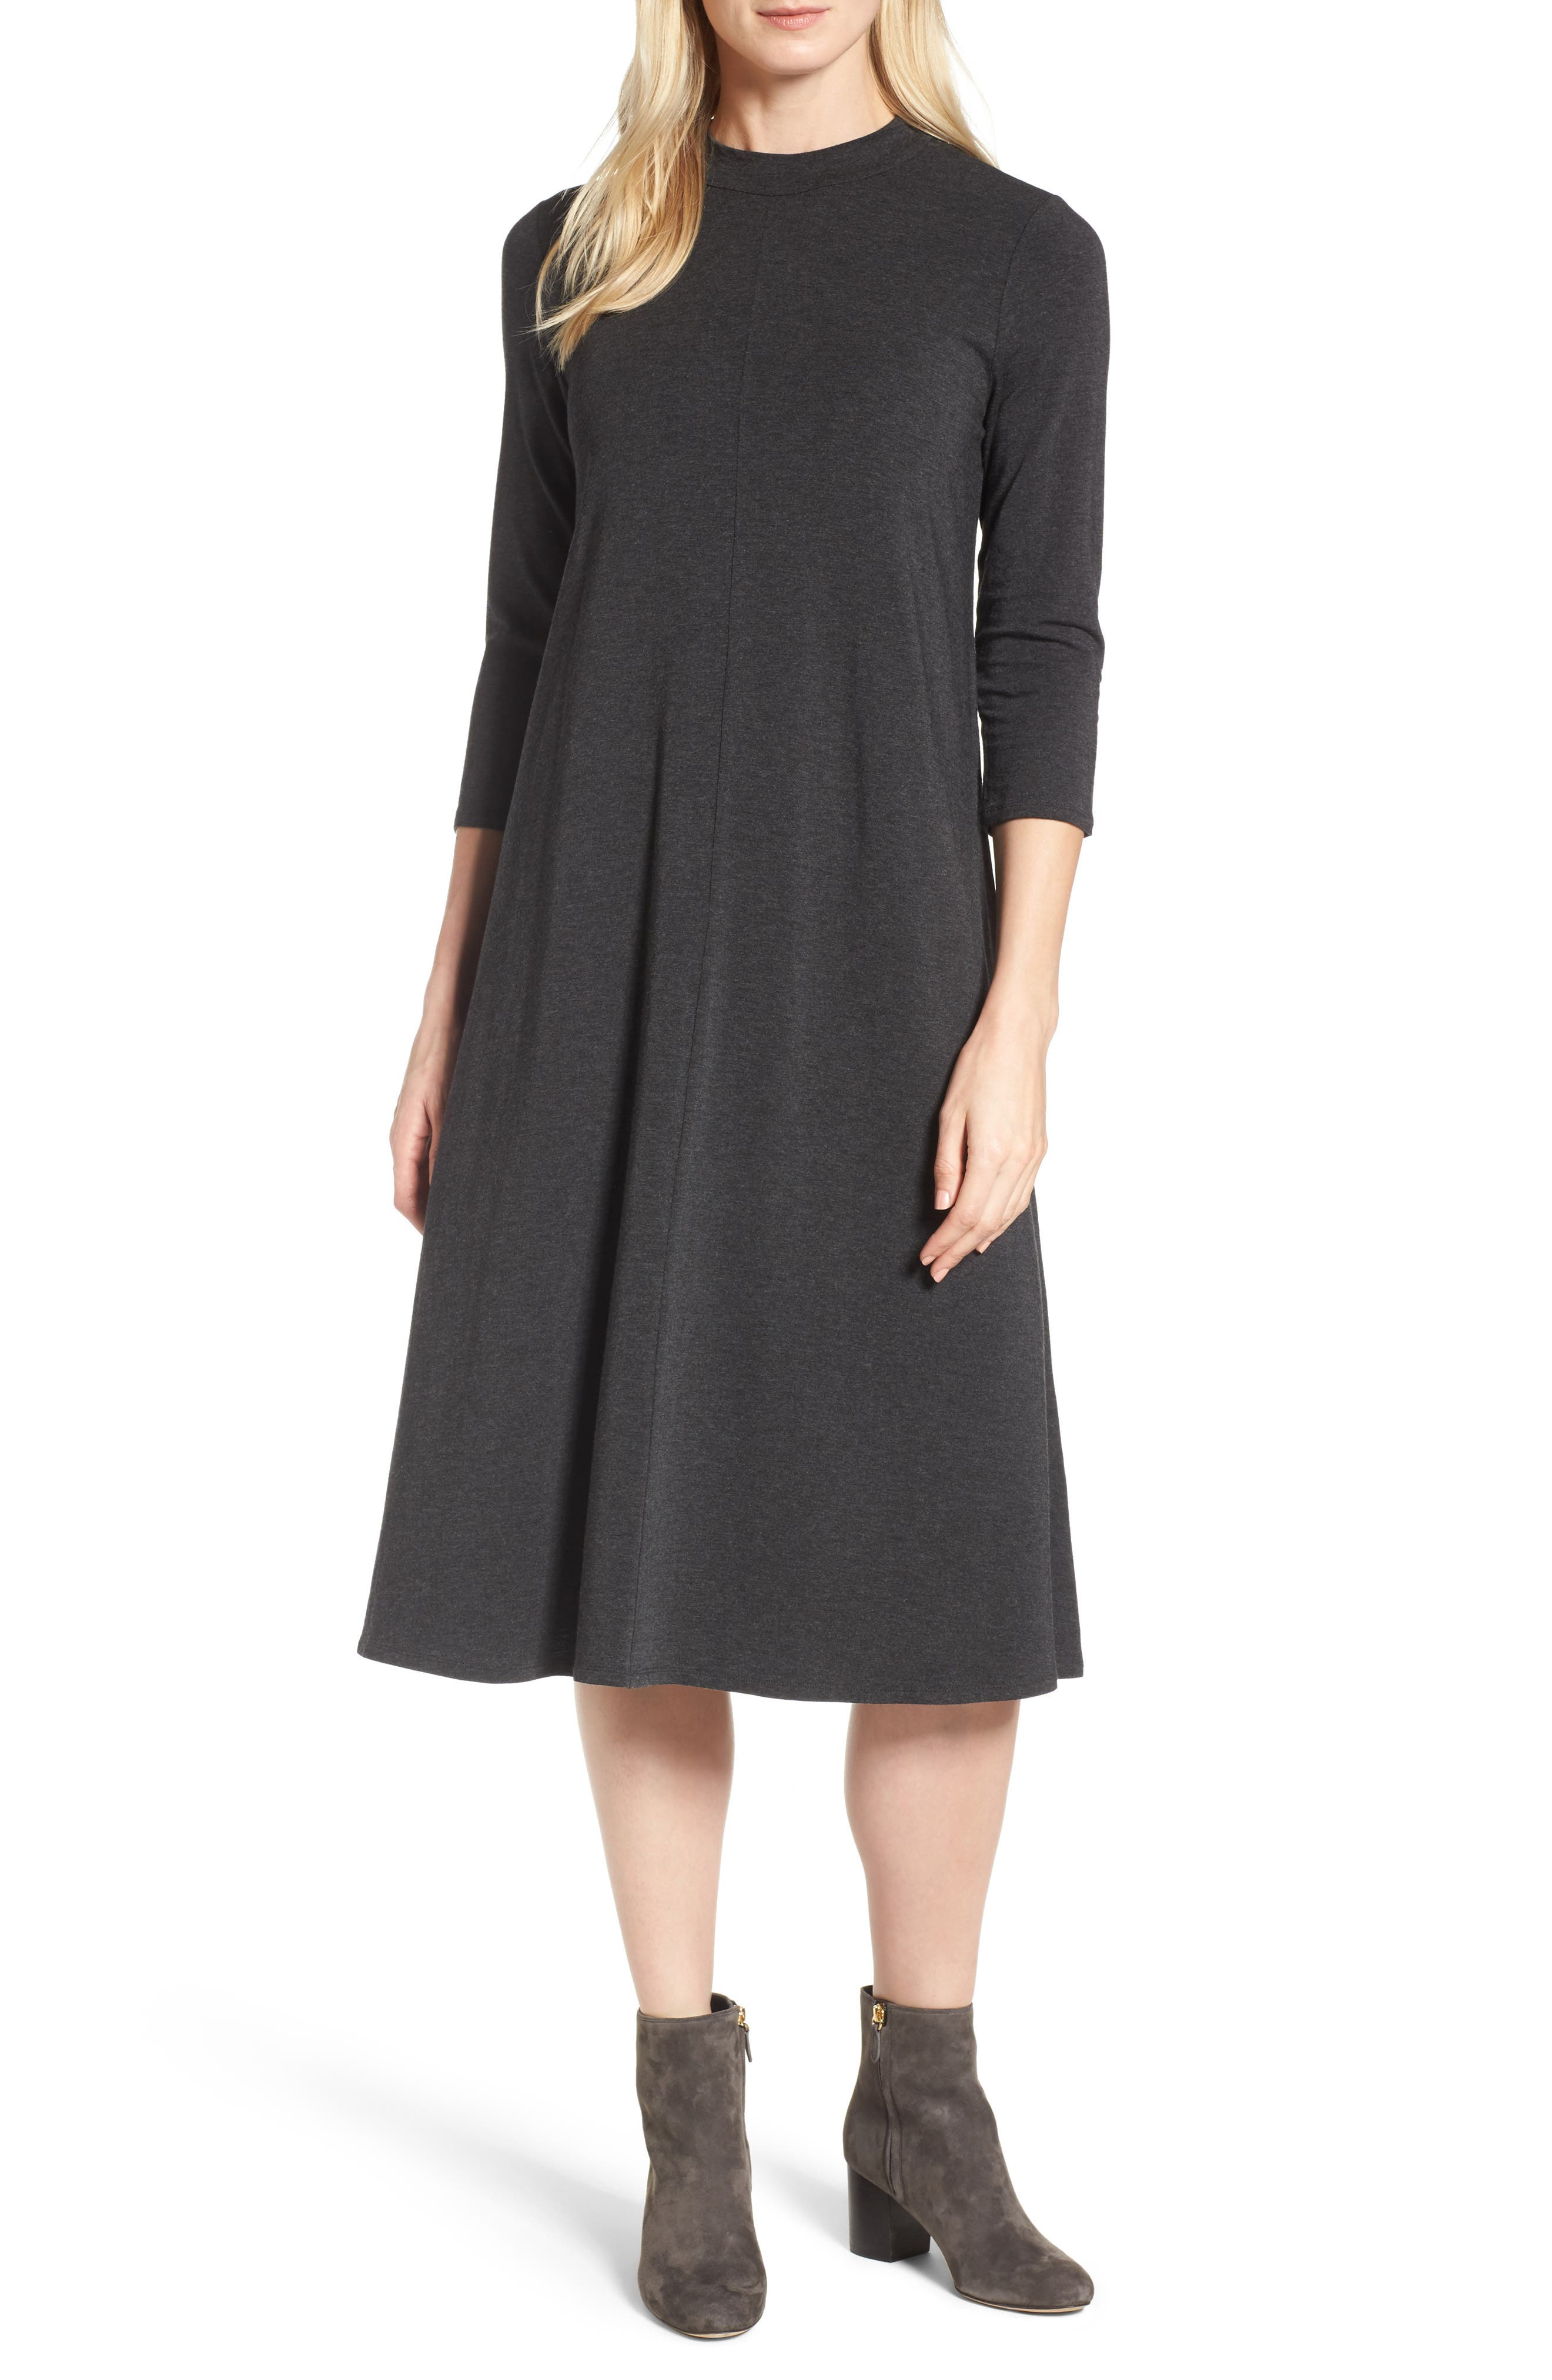 Alternate Image 1 Selected - Eileen Fisher Stretch Tencel® Lyocell Midi Dress